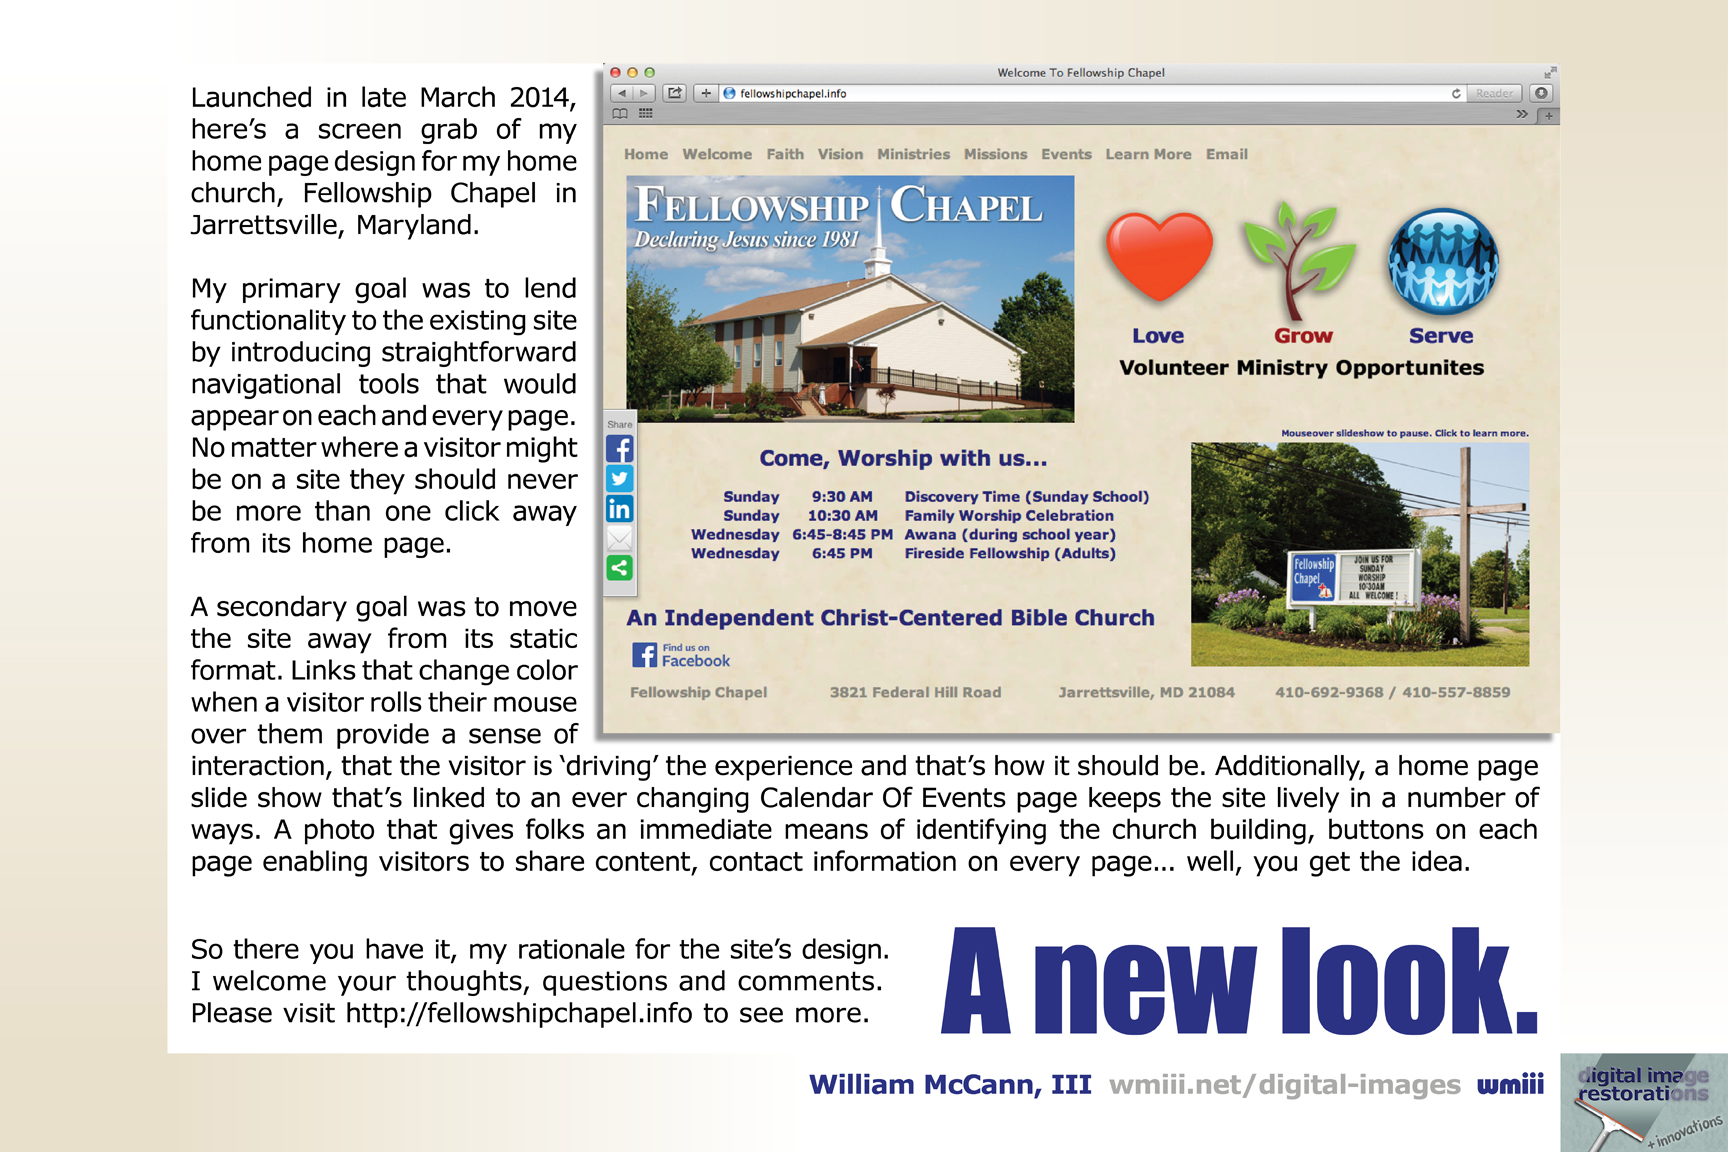 A new look for Fellowship Chapel's website.